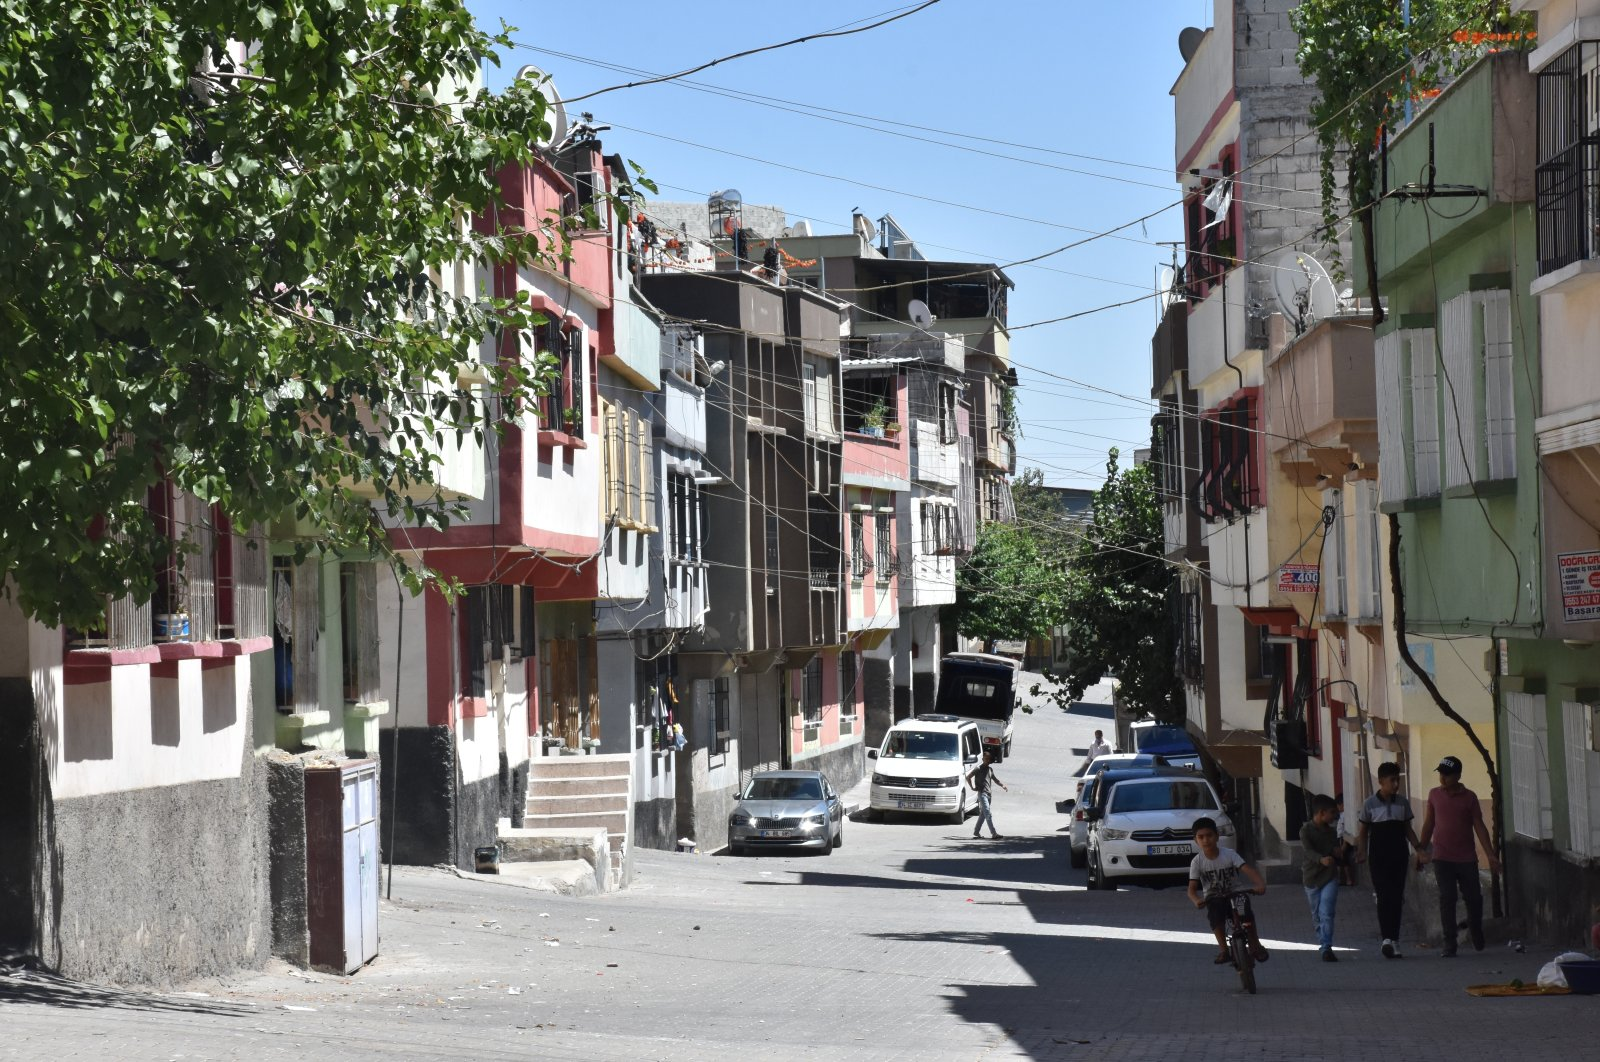 A view of the street where the attack took place, in Gaziantep, southeastern Turkey, Aug. 19, 2020. (AA Photo)